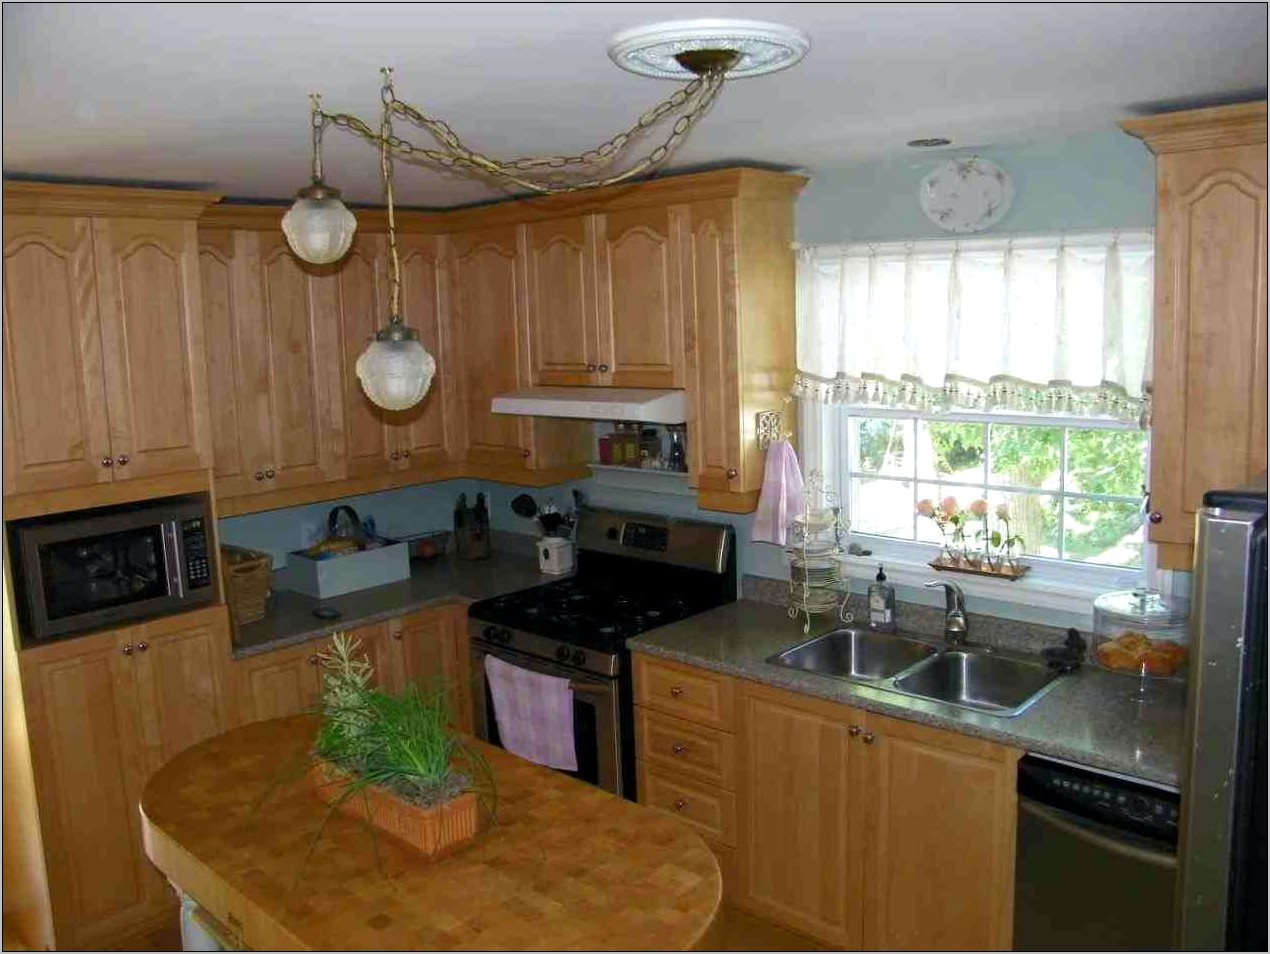 Ceiling Hanging Decor For Kitchen